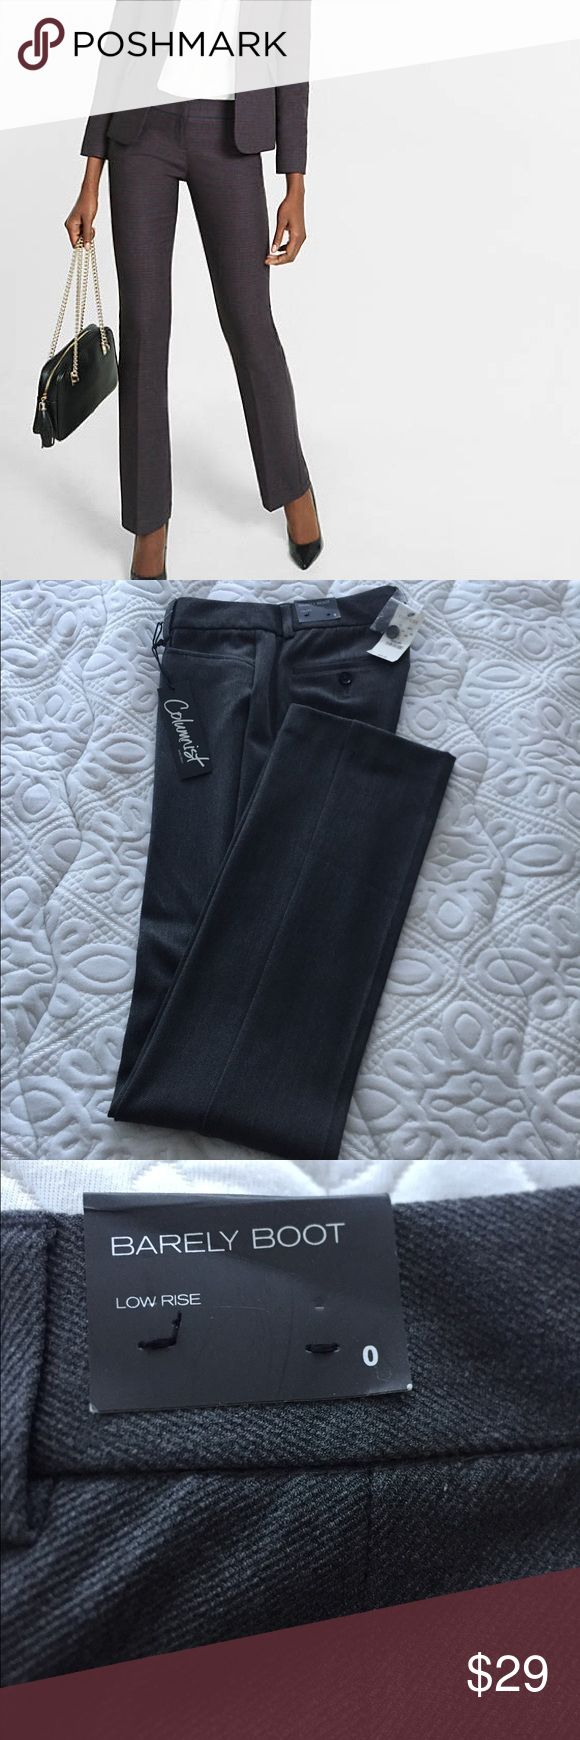 Express columnist barely boot pants Dark grey Express columnist barely boot pants. Size 0 have NOT been altered in any way. NWT. A MUST FOR ANY WARDROBE. Express Pants Boot Cut & Flare